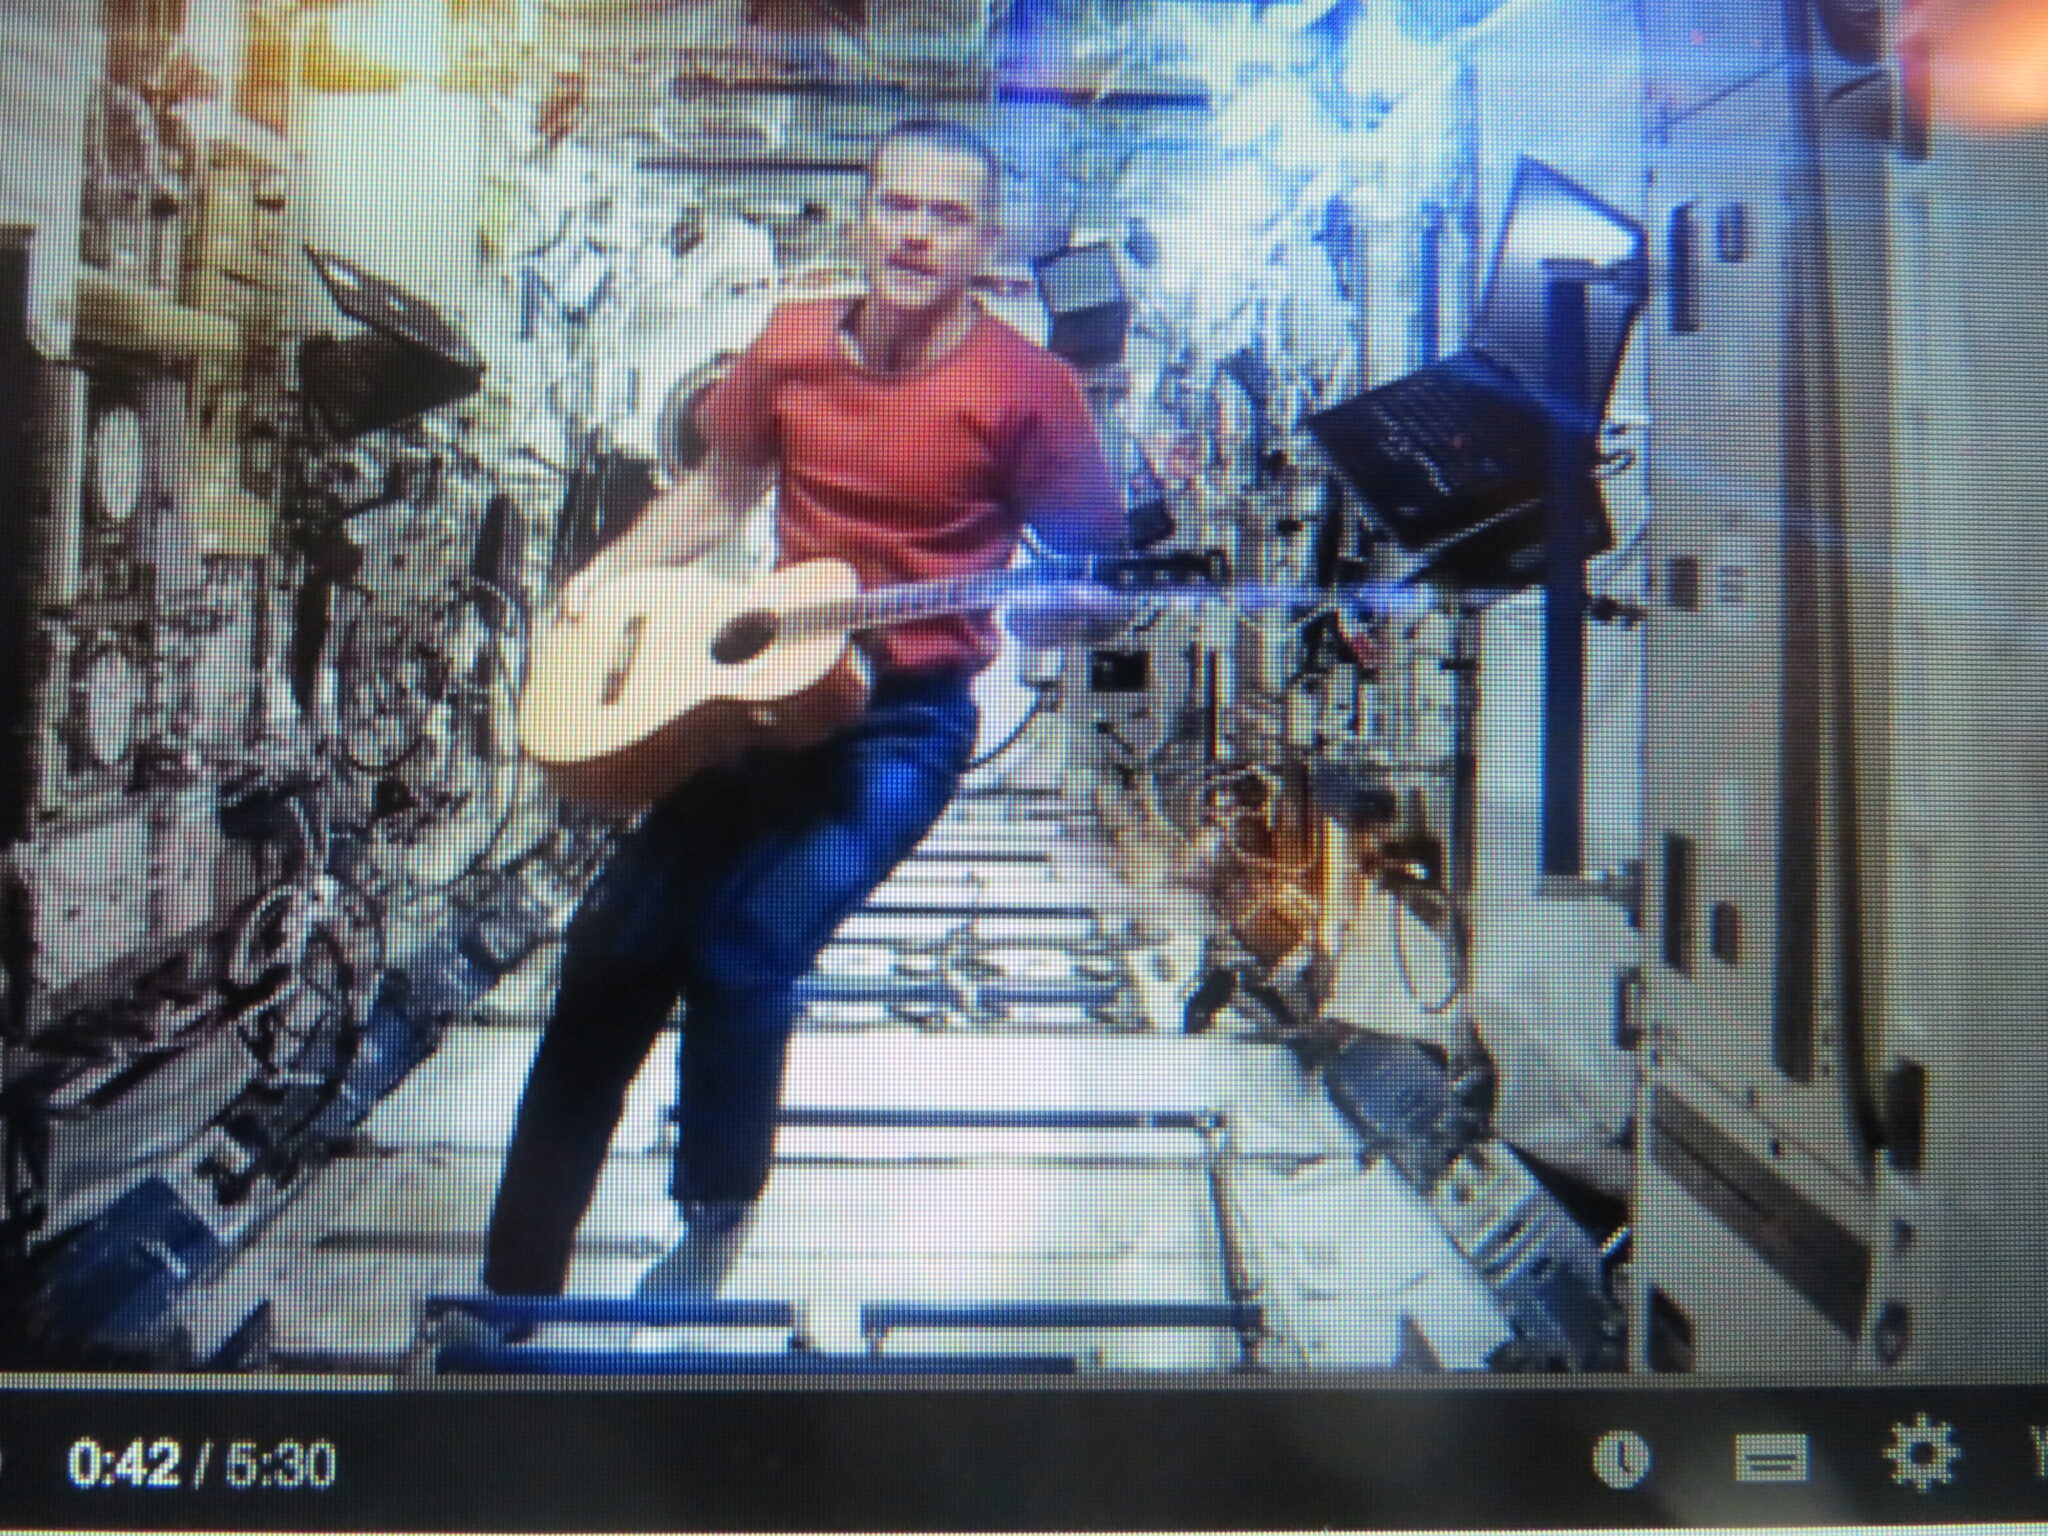 Chris Hadfield video